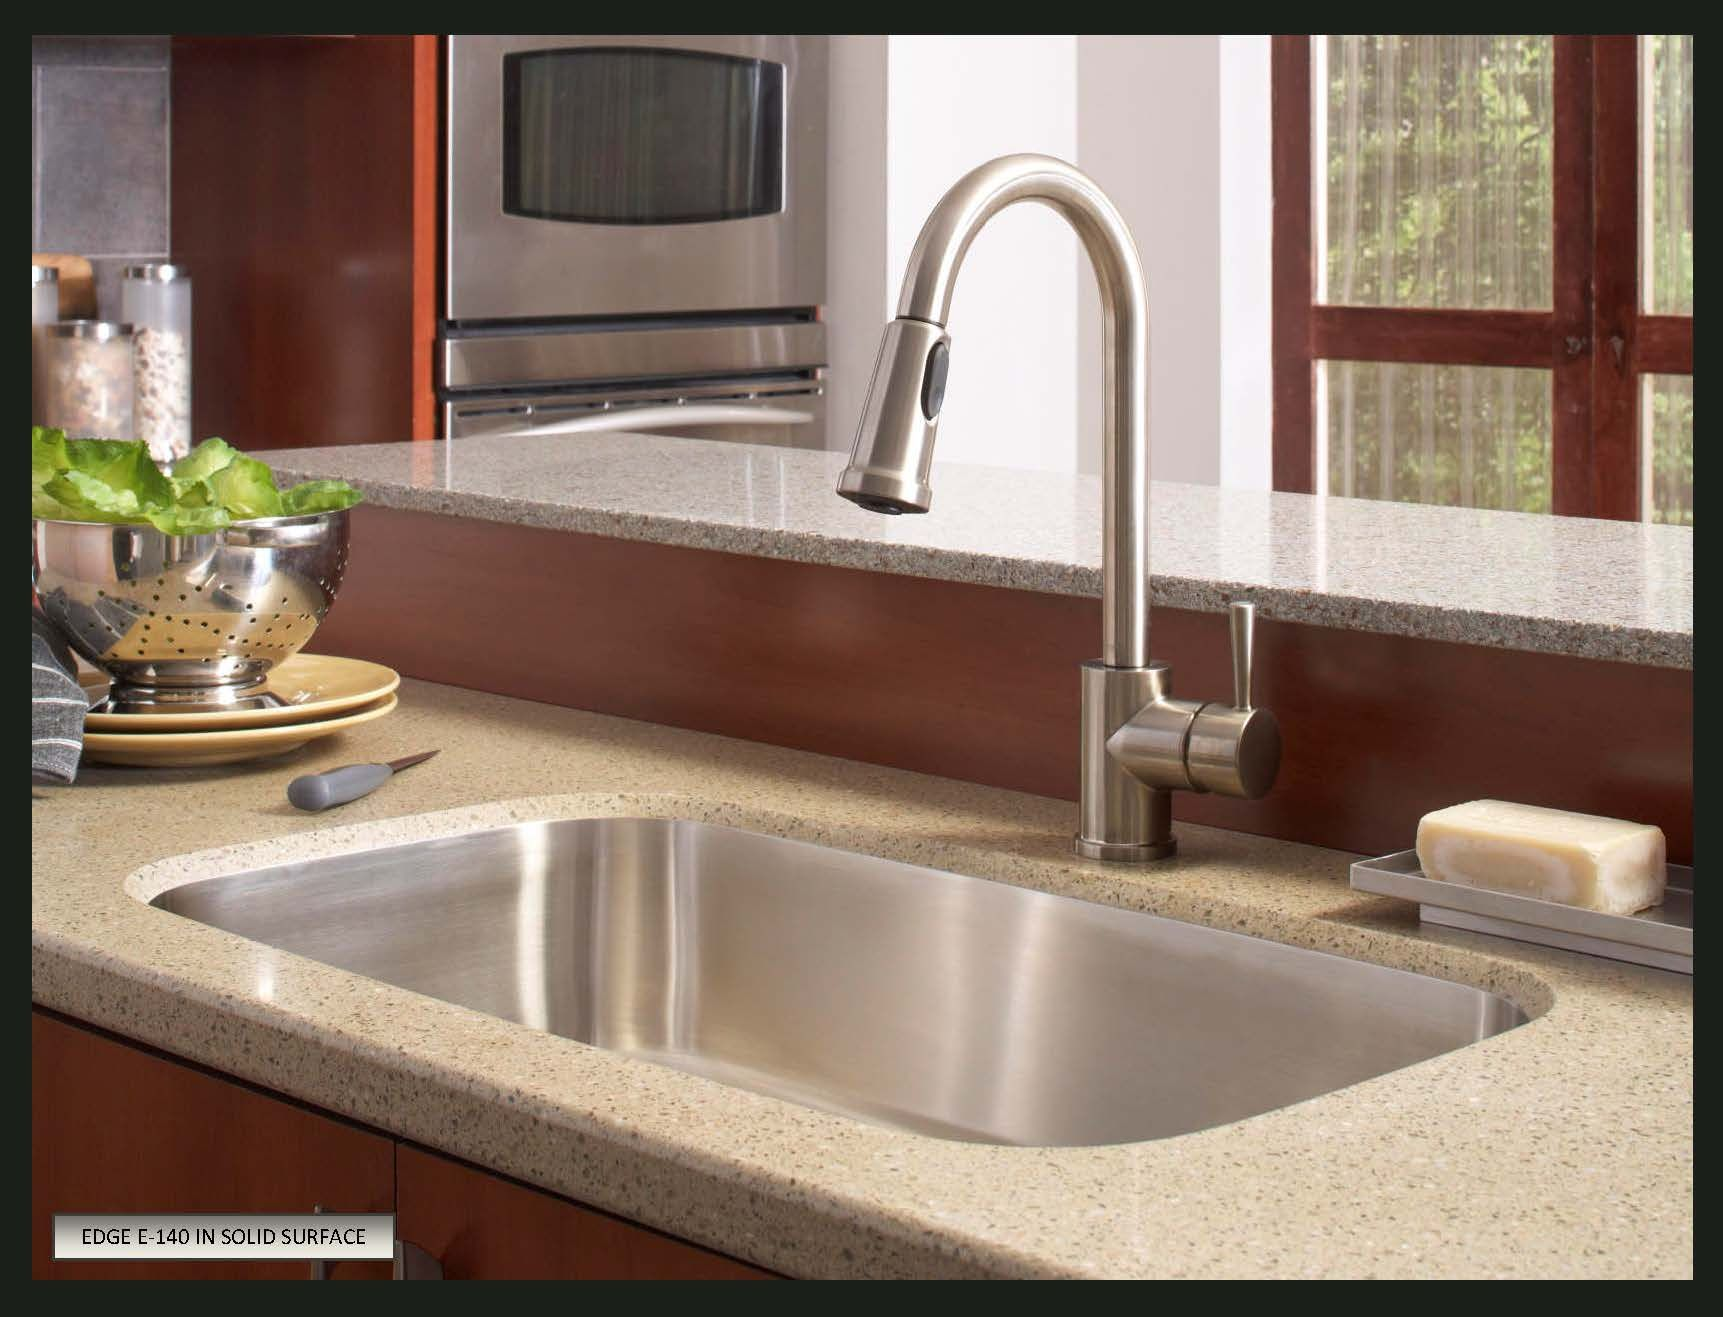 How To Clean Corian Sinks And Countertops Stainless Sink In A Corian Countertop Google Search